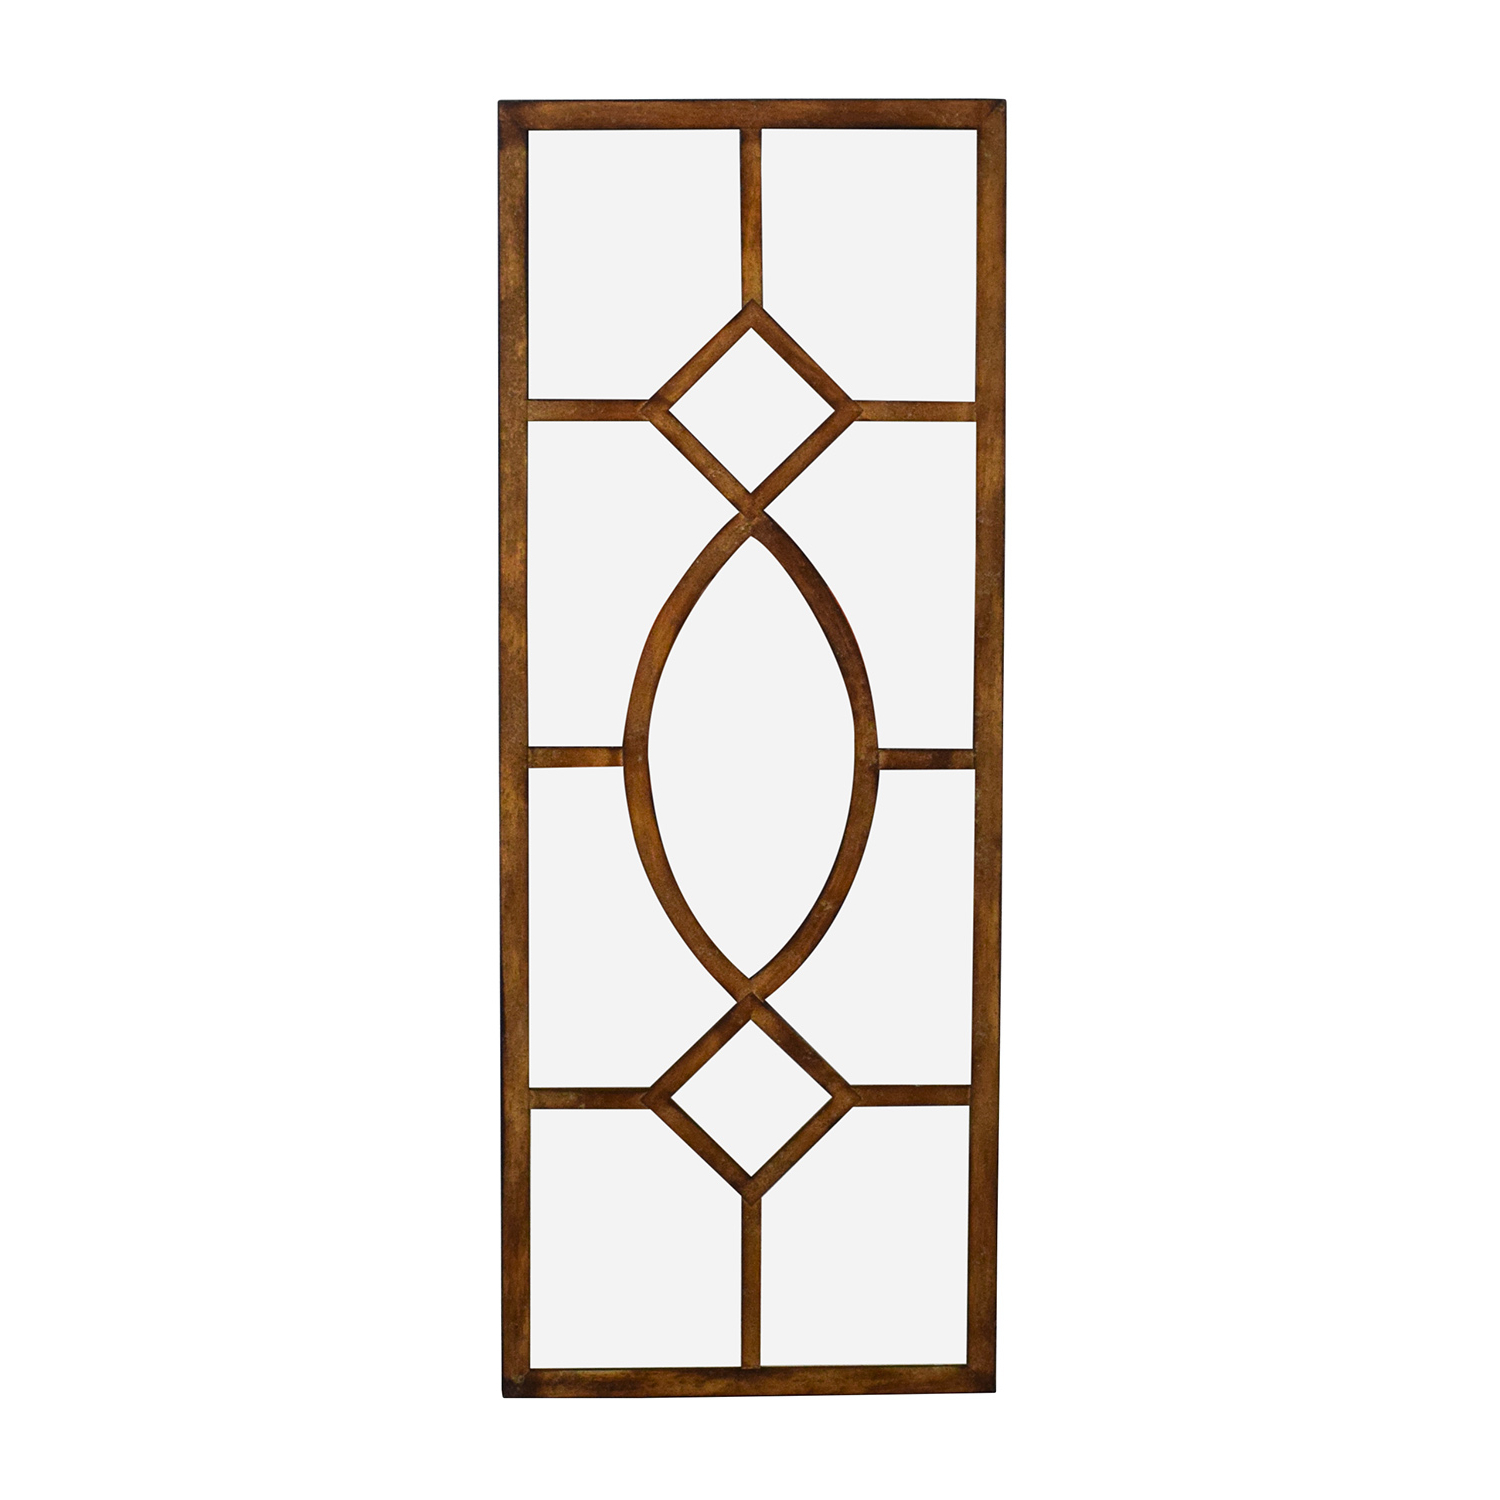 [%75% Off – Pier 1 Pier 1 Antiqued Wall Mirror / Decor Throughout Most Recently Released Pier One Wall Mirrors|Pier One Wall Mirrors In Well Liked 75% Off – Pier 1 Pier 1 Antiqued Wall Mirror / Decor|Widely Used Pier One Wall Mirrors In 75% Off – Pier 1 Pier 1 Antiqued Wall Mirror / Decor|2019 75% Off – Pier 1 Pier 1 Antiqued Wall Mirror / Decor With Regard To Pier One Wall Mirrors%] (View 15 of 20)